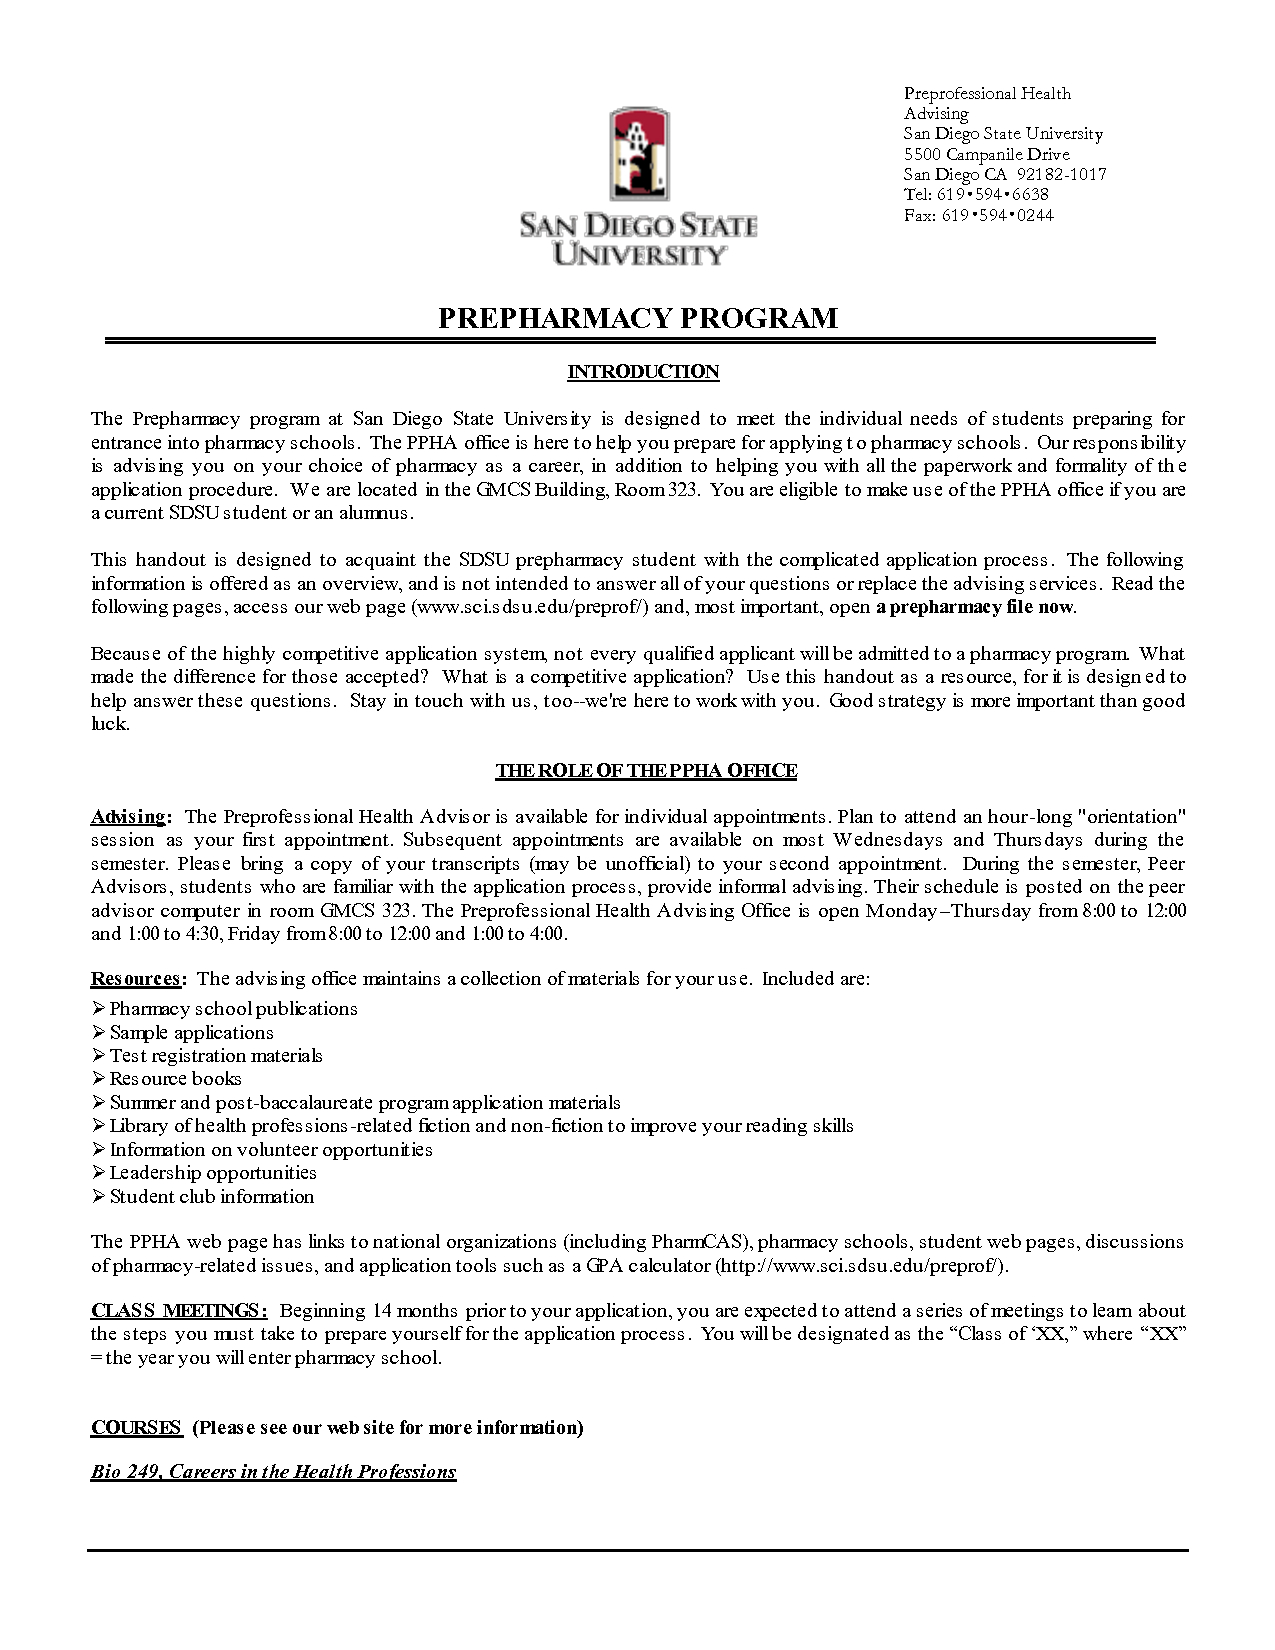 Medical School Letter Of Recommendation Template - Pharmacy School Essay Pharmacy School Essay Ideas for Othello